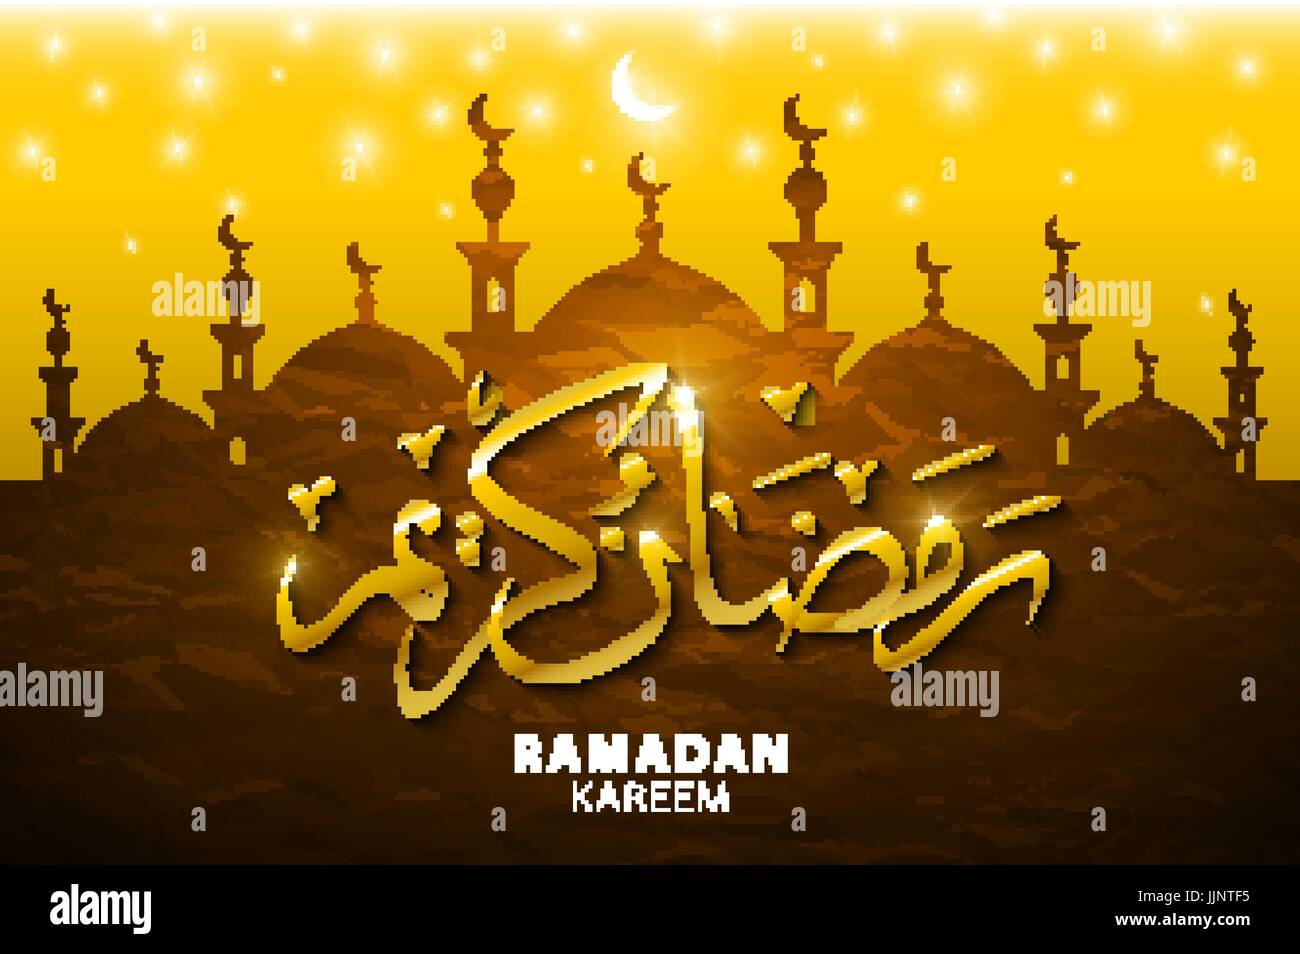 Ramadan kareem arabic calligraphy for islamic greeting translation ramadan kareem arabic calligraphy for islamic greeting translation of text ramadan kareem may generosity bless you during the holy month art m4hsunfo